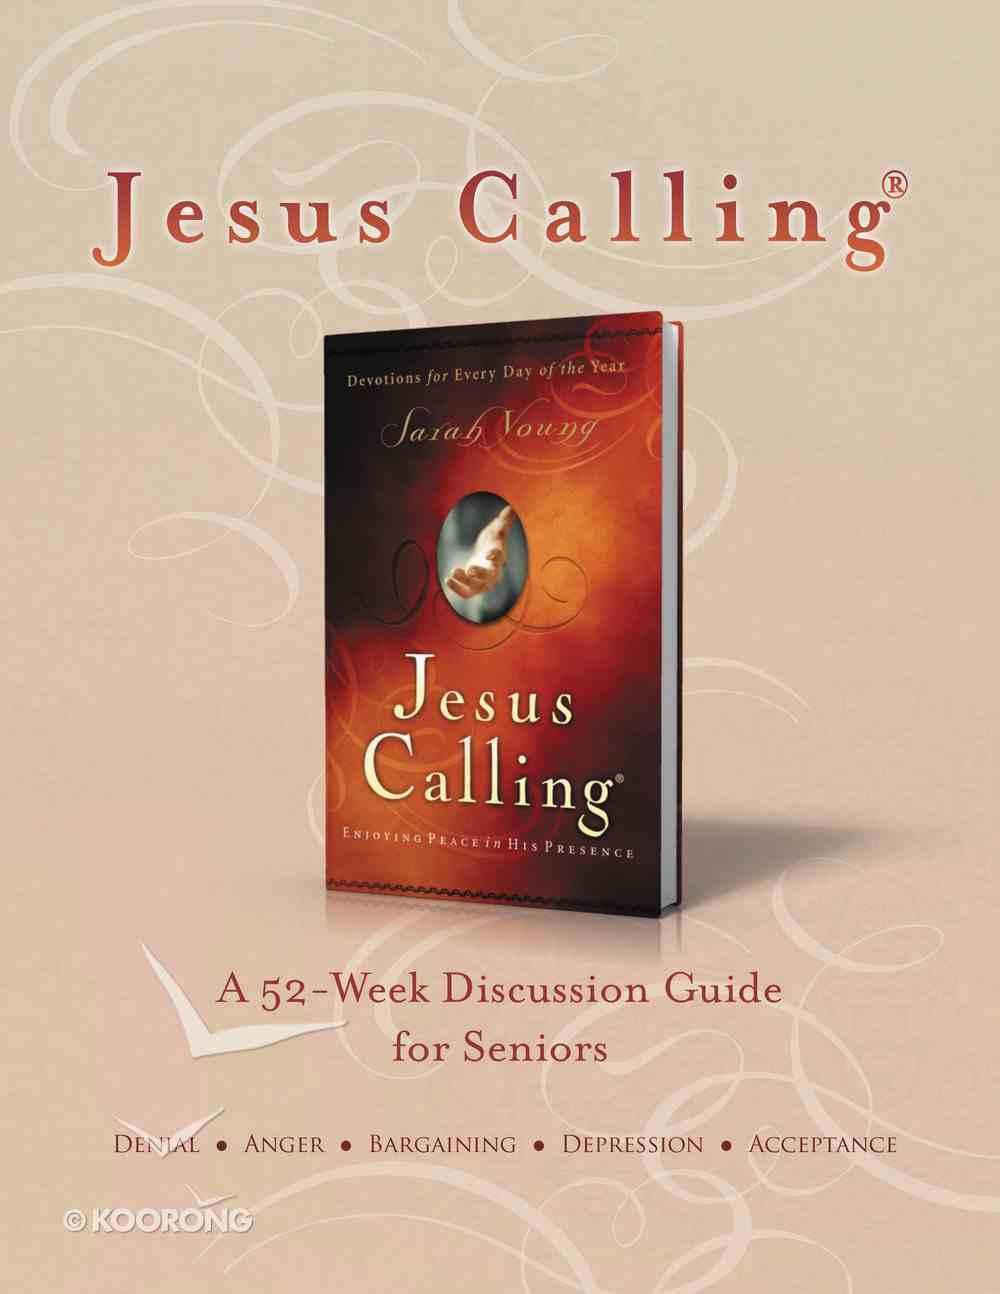 Jesus Calling Book Club Discussion Guide For Seniors eBook